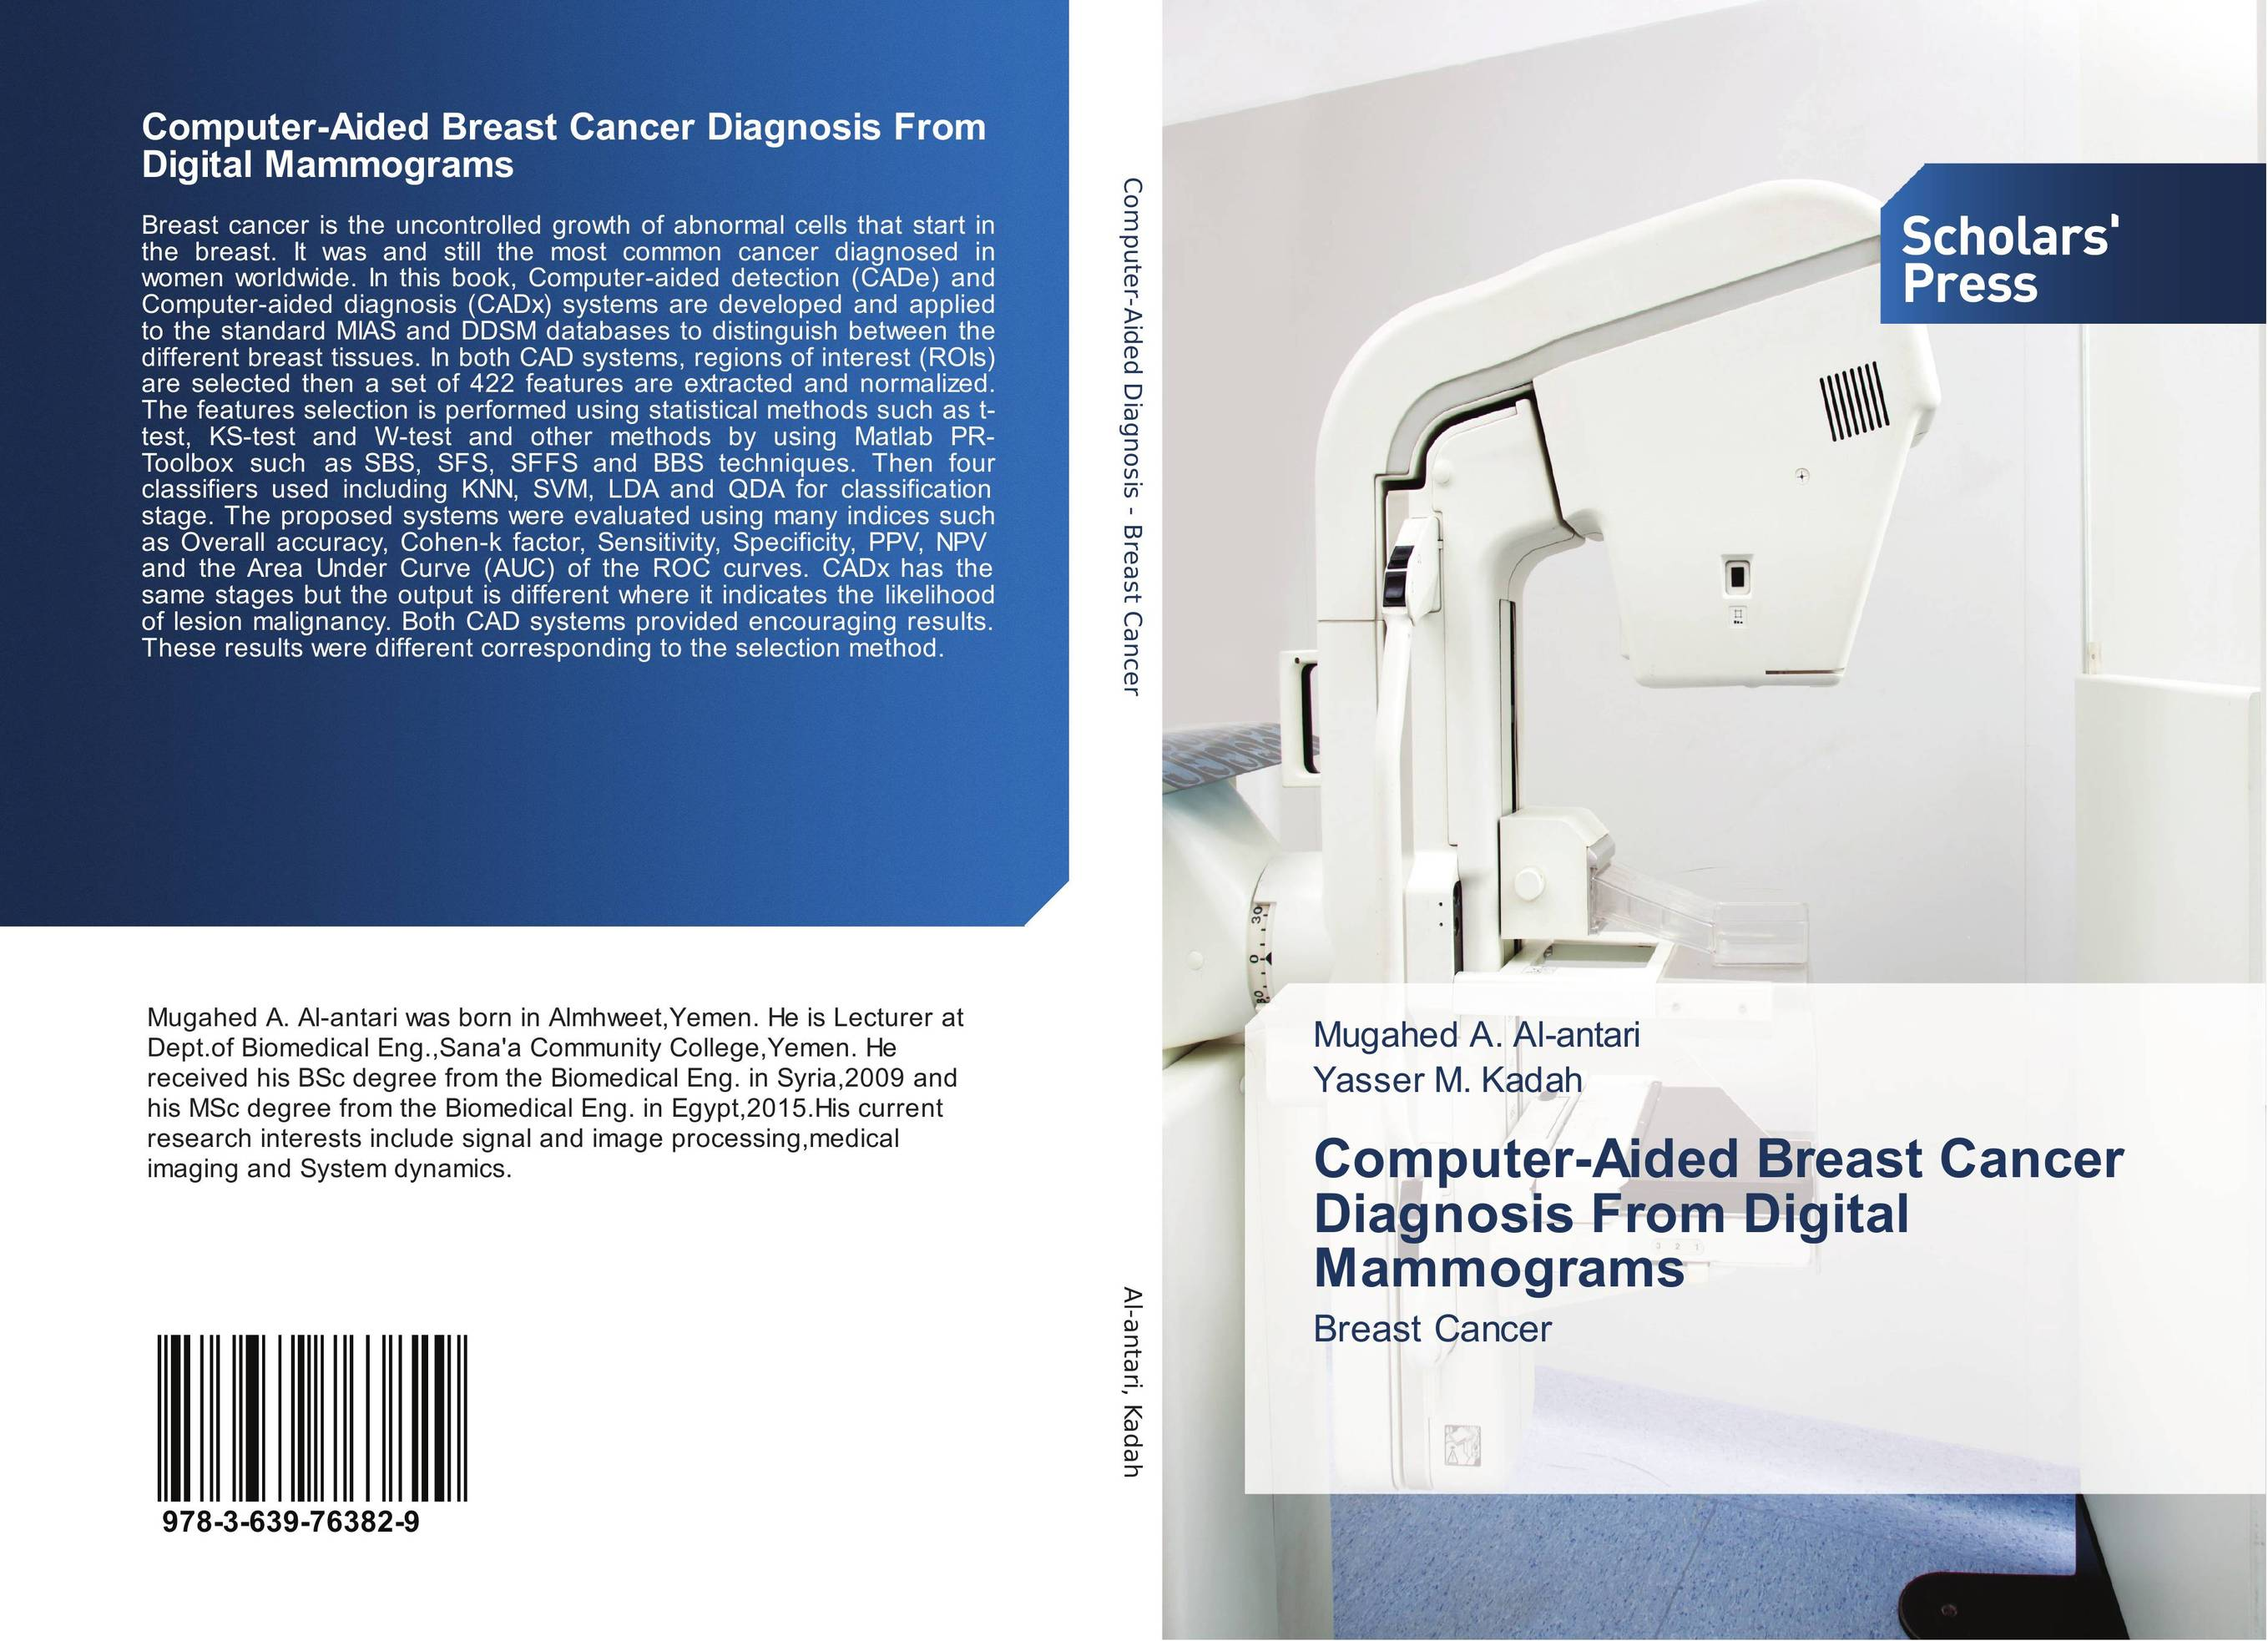 Computer-Aided Breast Cancer Diagnosis From Digital Mammograms late stage diagnosis of cervical cancer